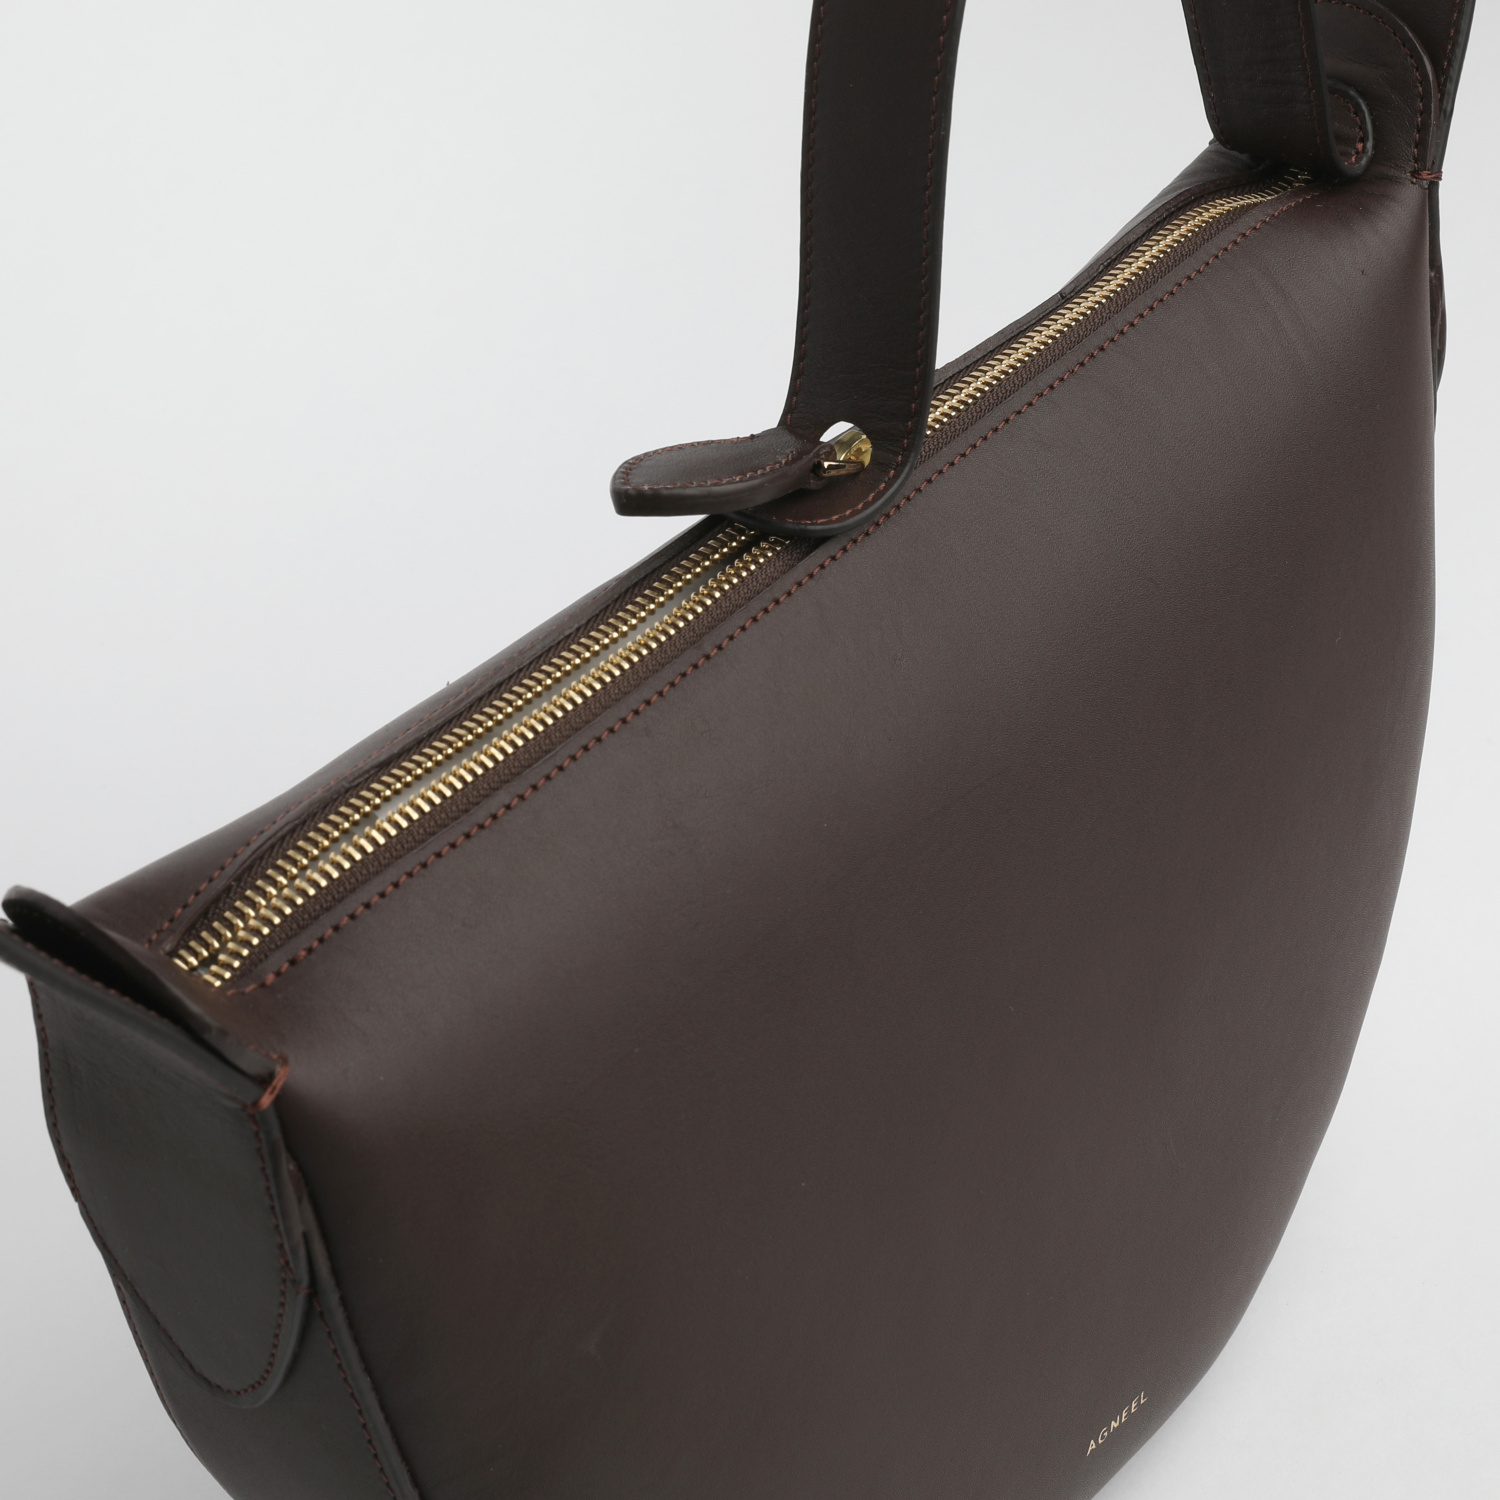 MONA HALF-MOON BAG IN CALFSKIN